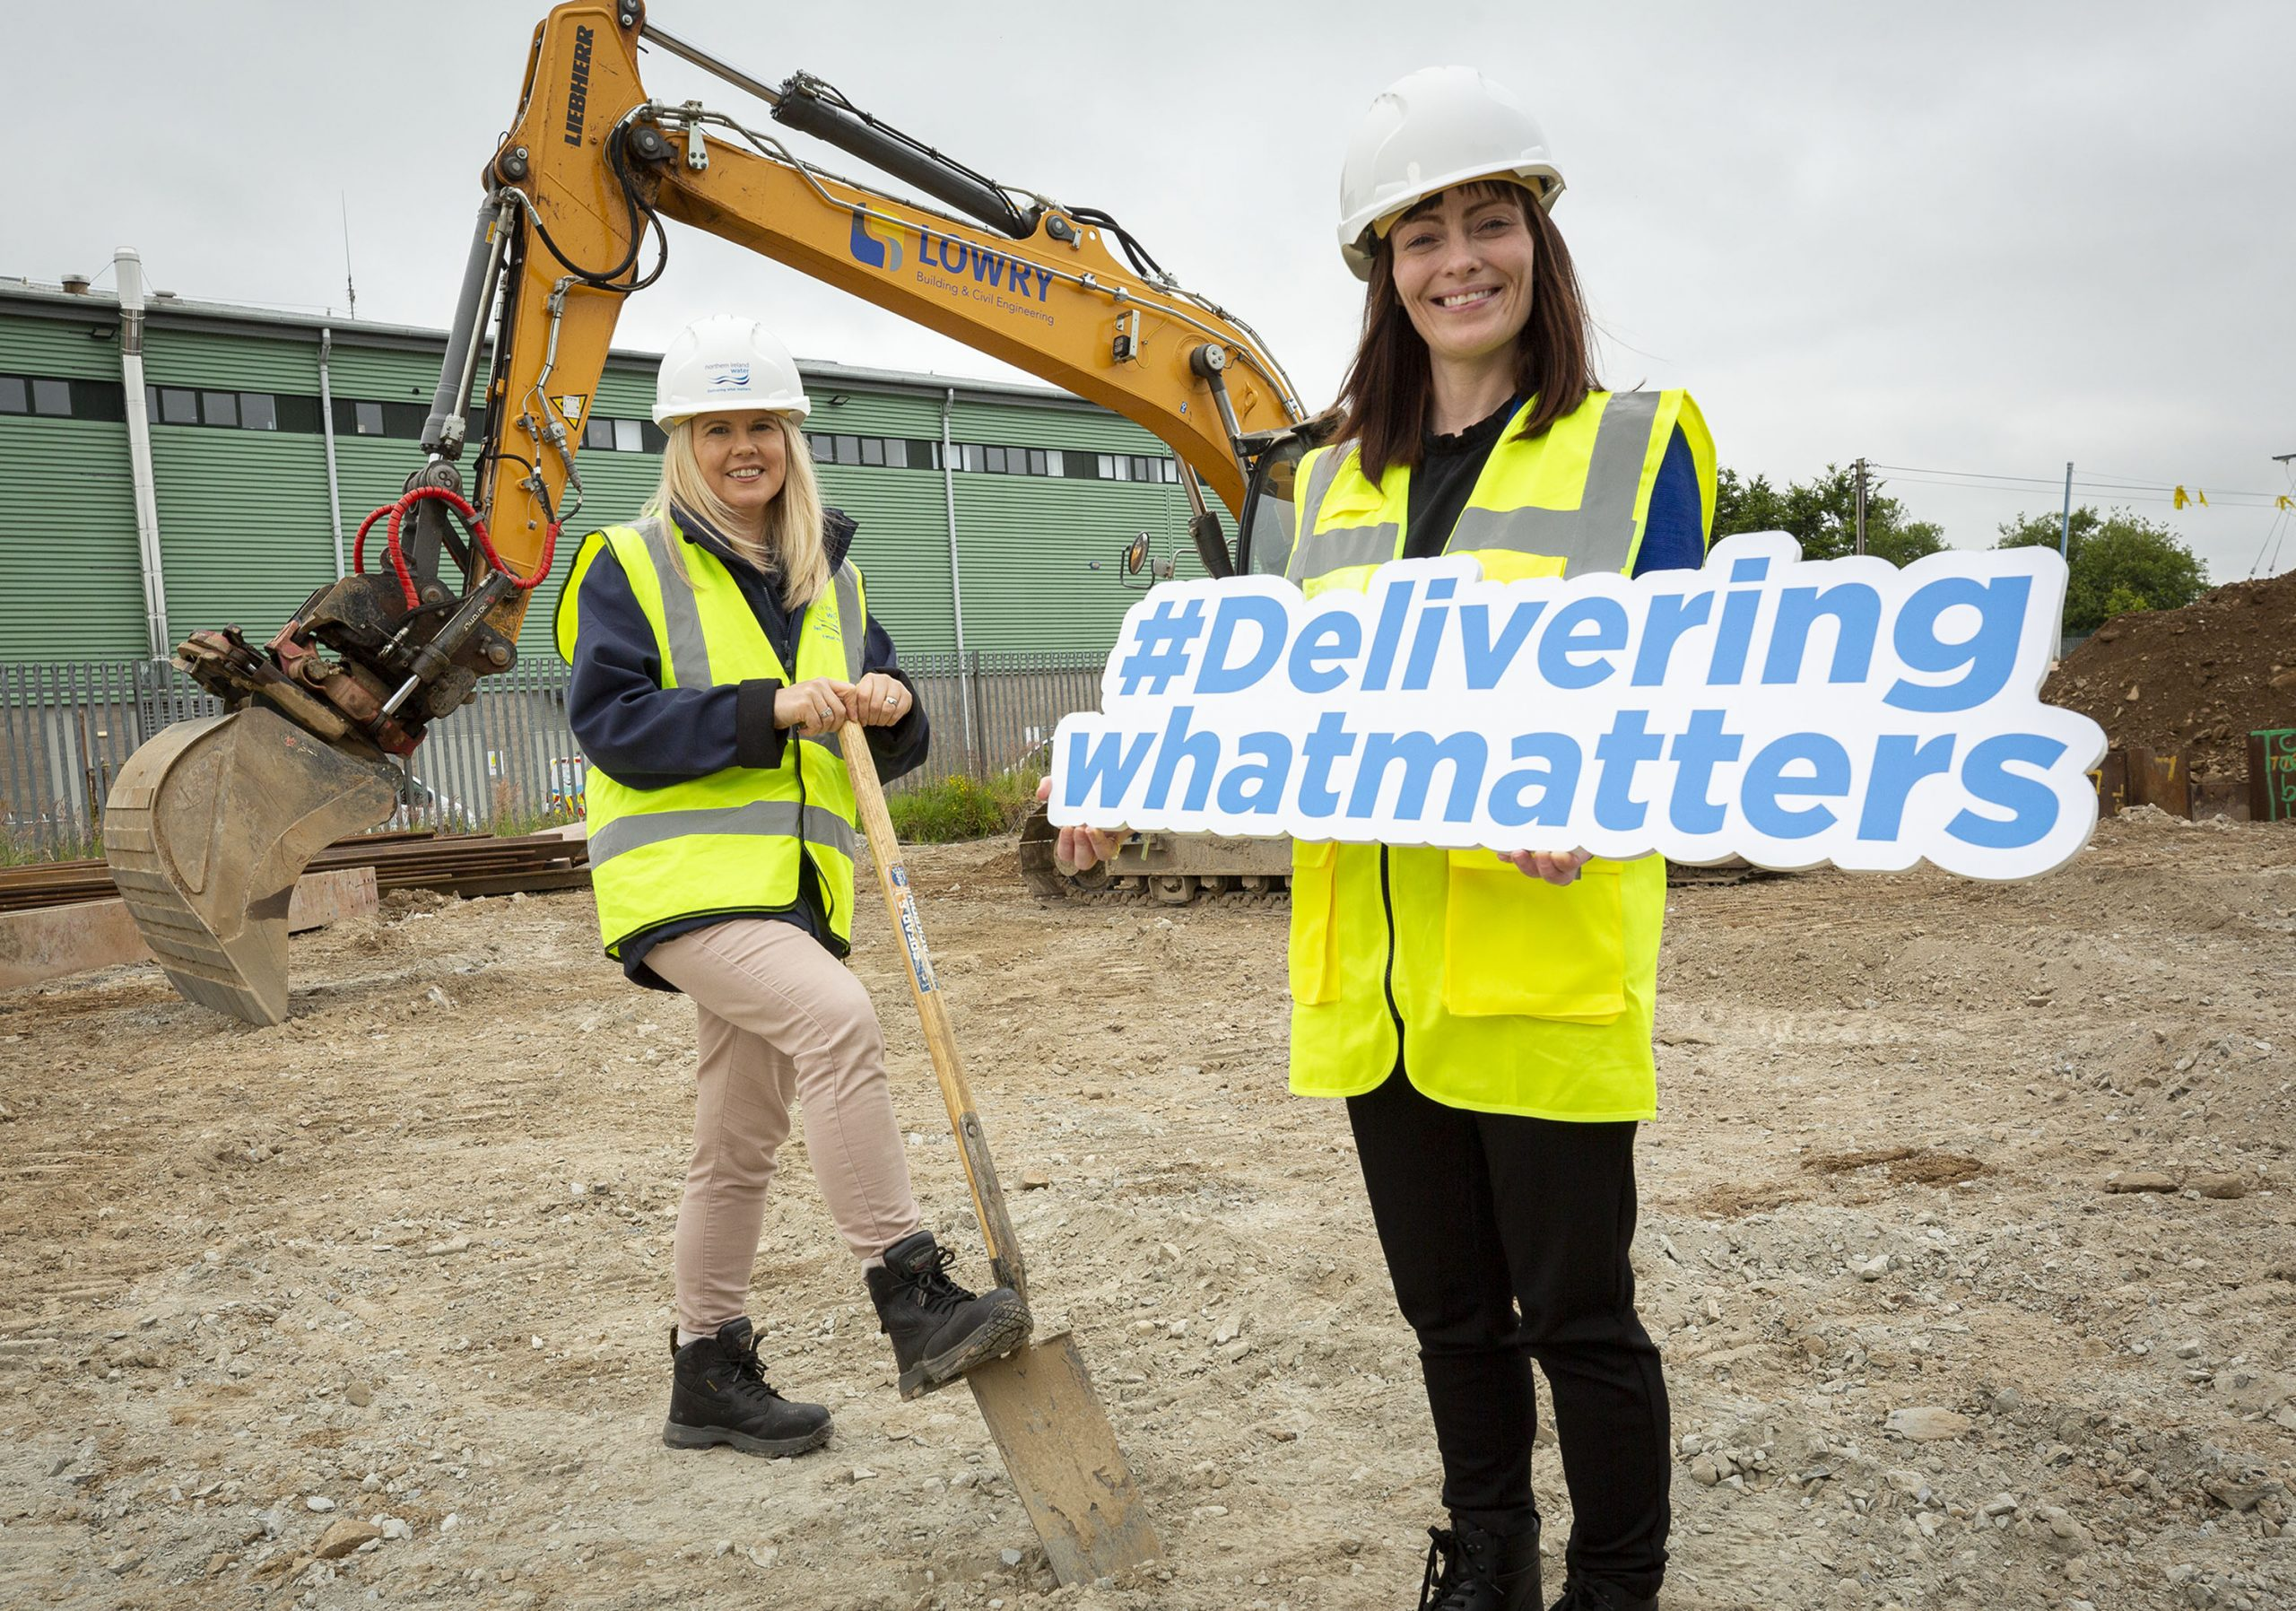 Minister Mallon is pictured with Sara Venning NI Water Chief Executive and representatives from NIW and Lowry Contractors.